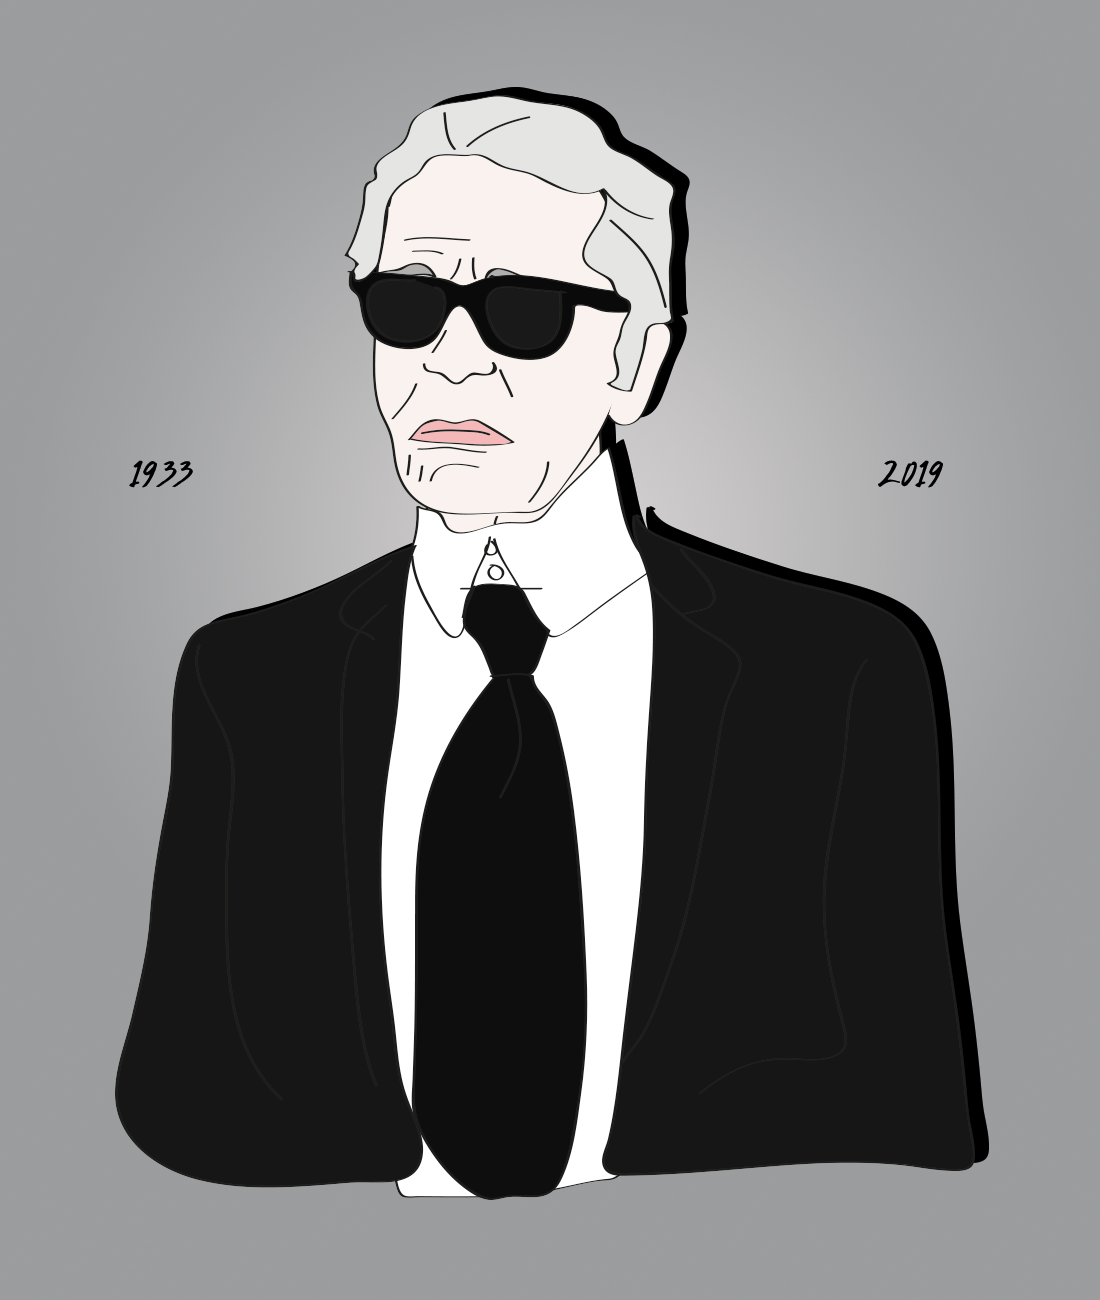 RIP Karl Lagerfeld, illustration